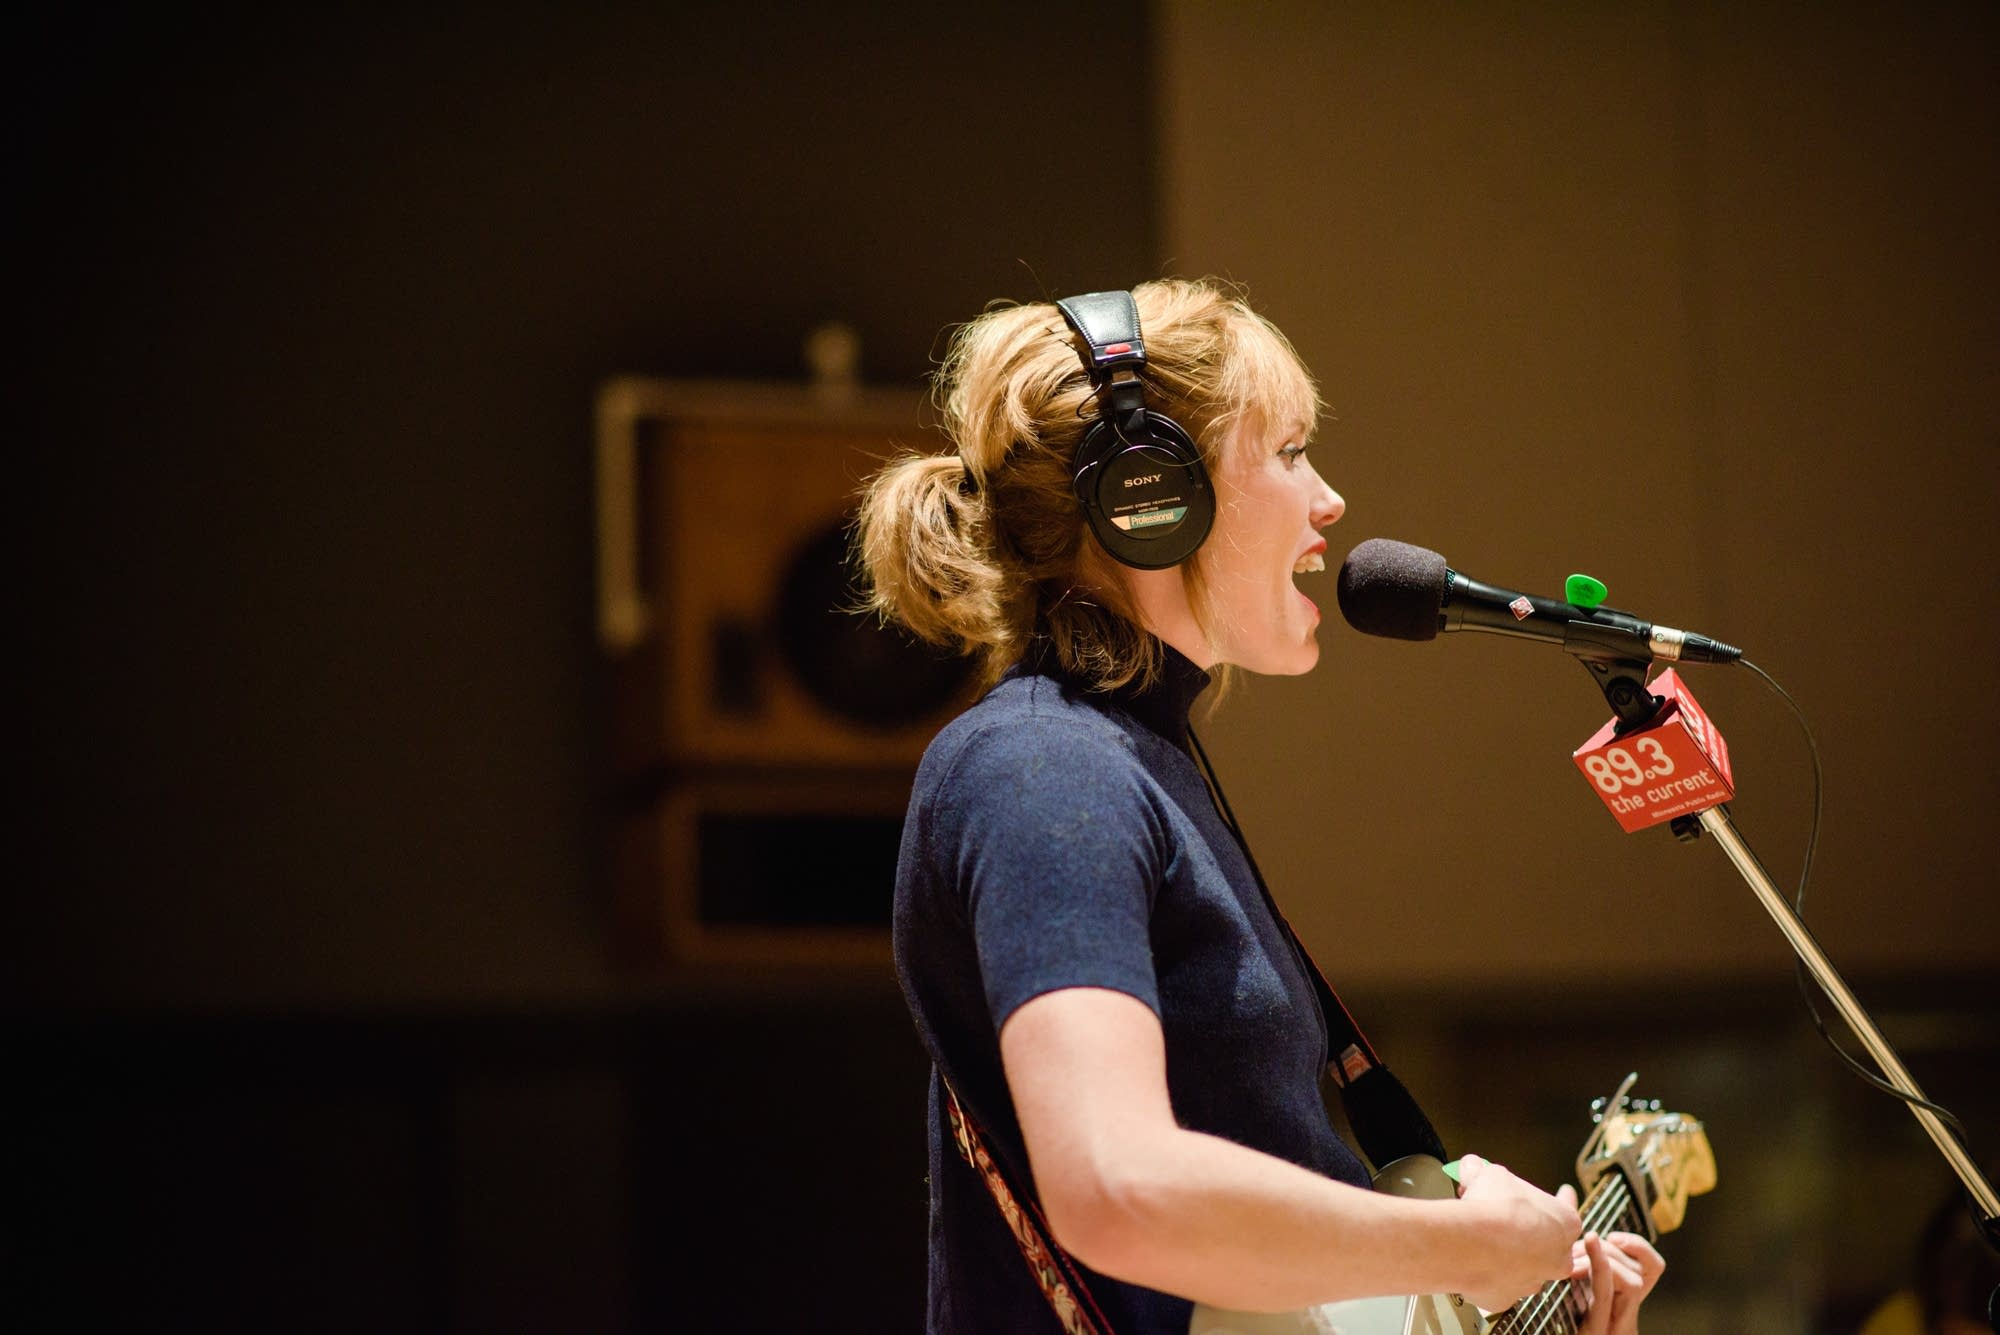 Haley Bonar performs in The Current studio